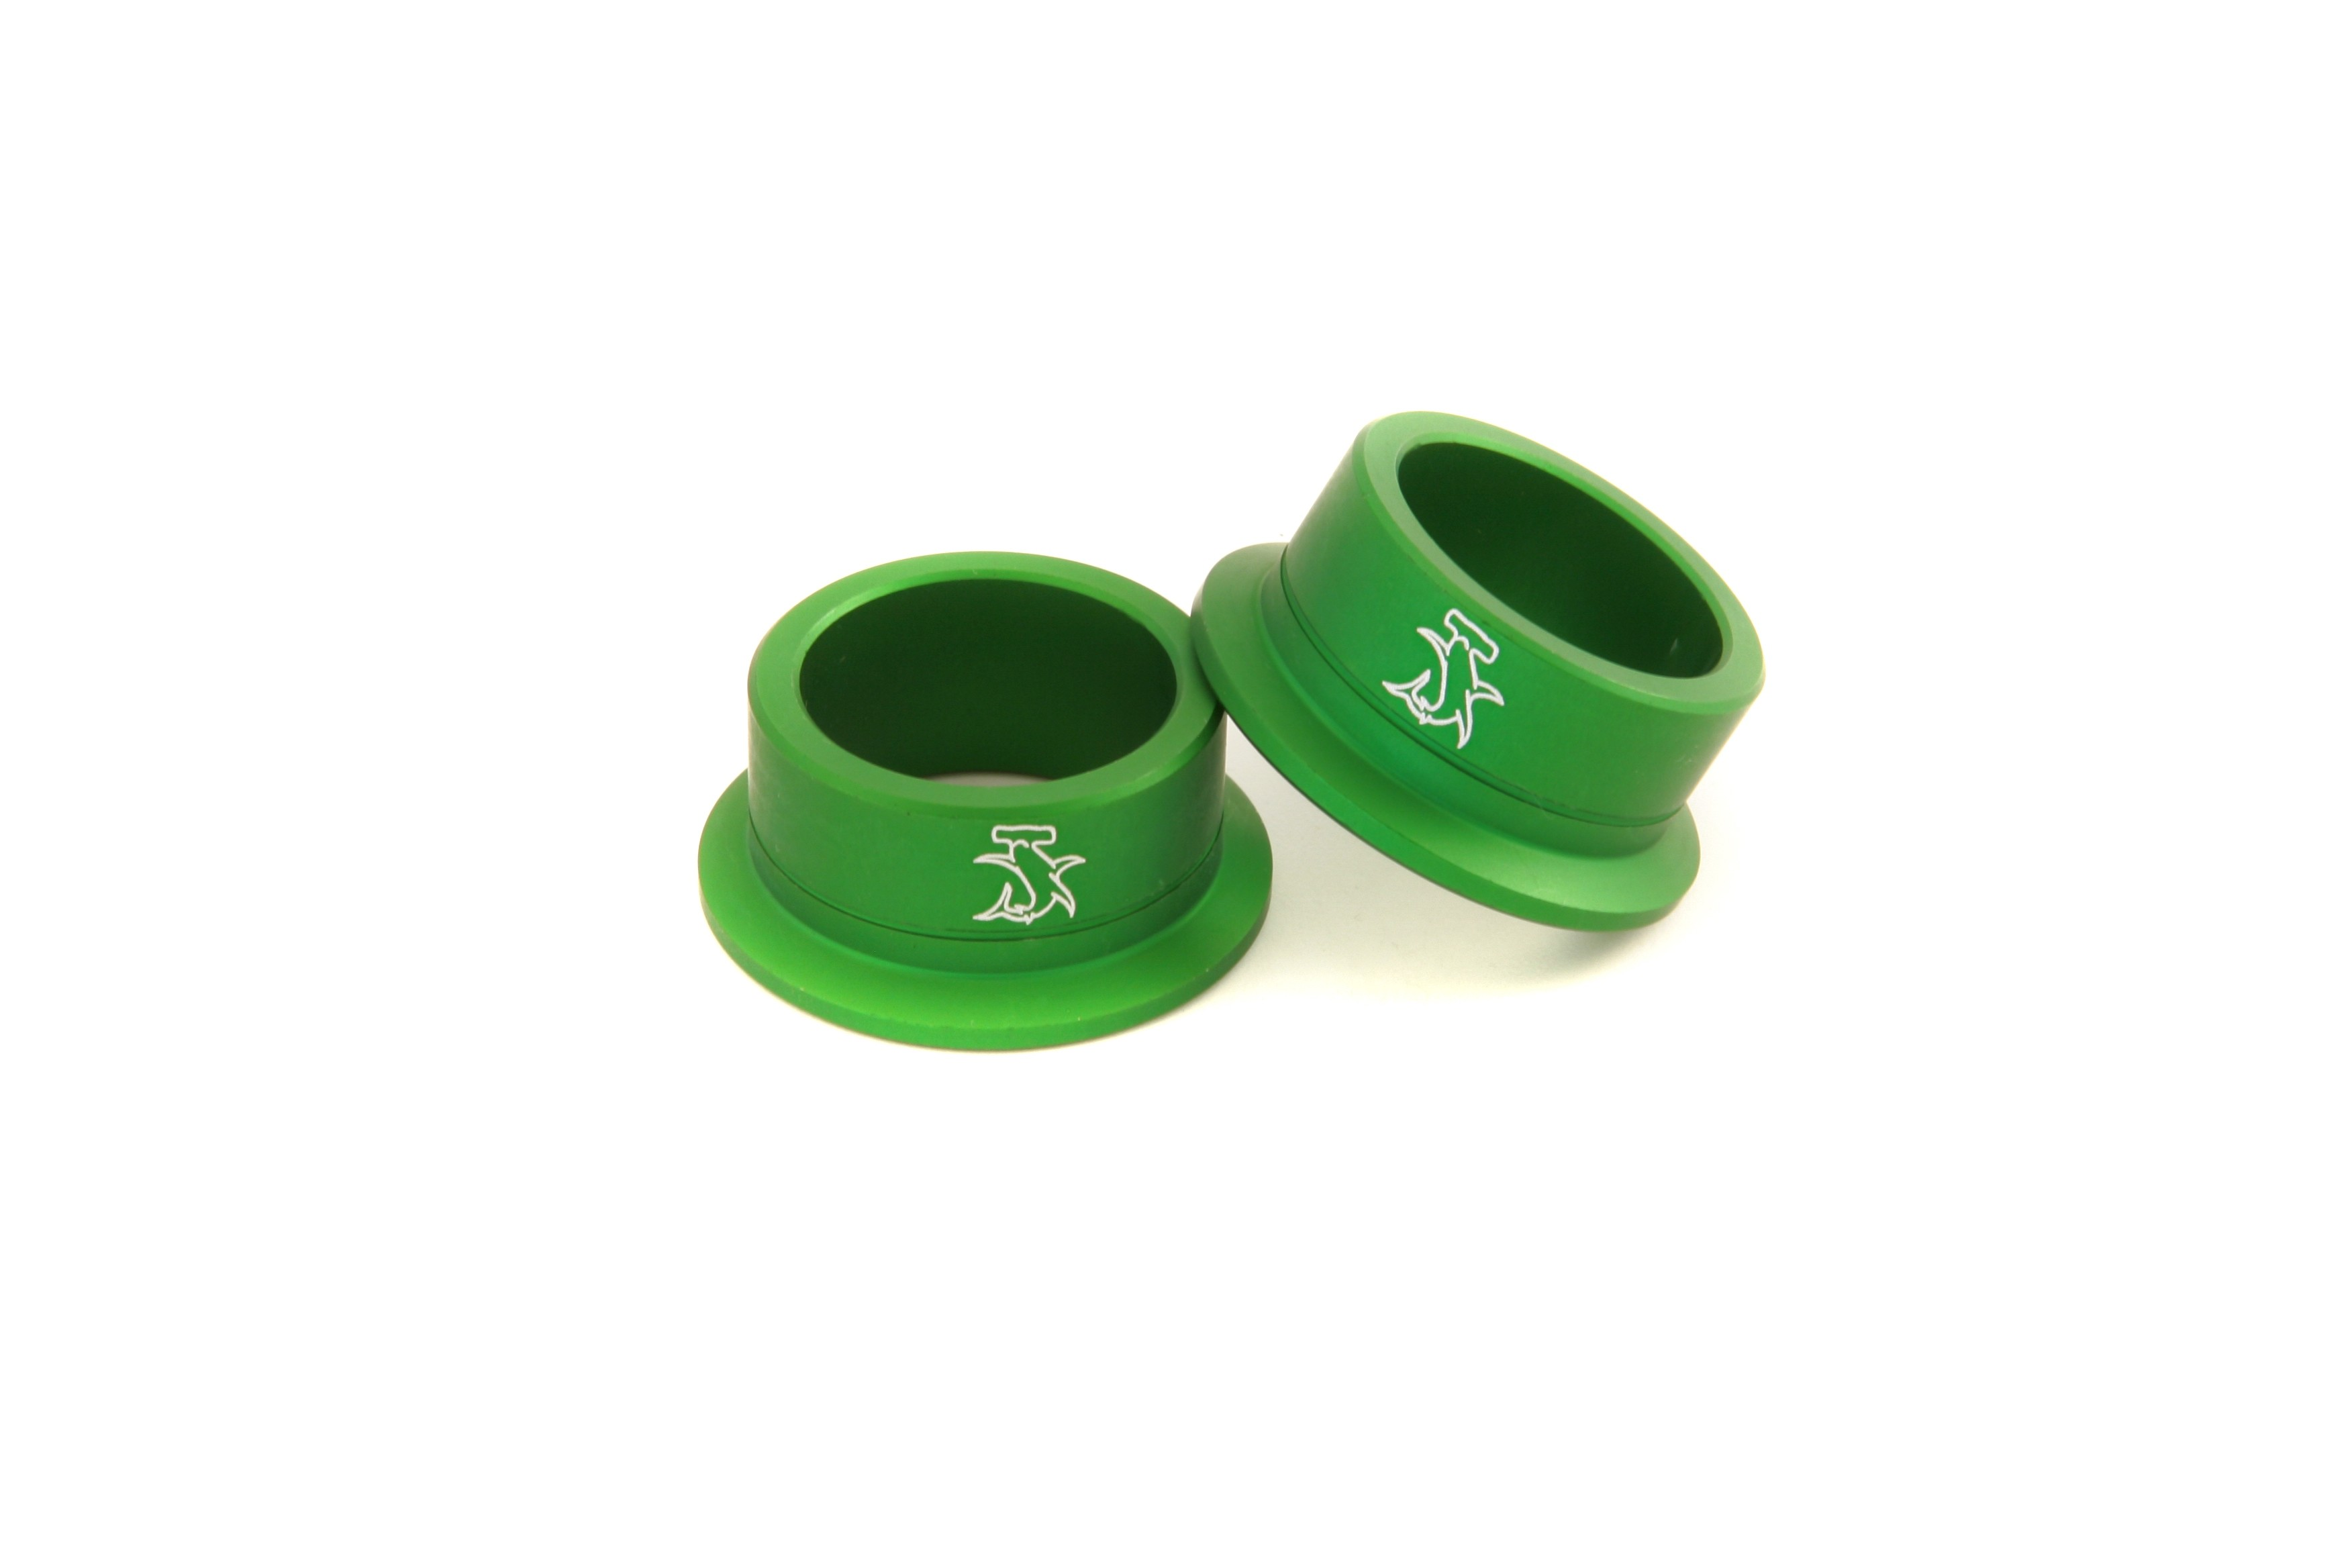 Kawasaki/Suzuki Rear Wheel Spacers